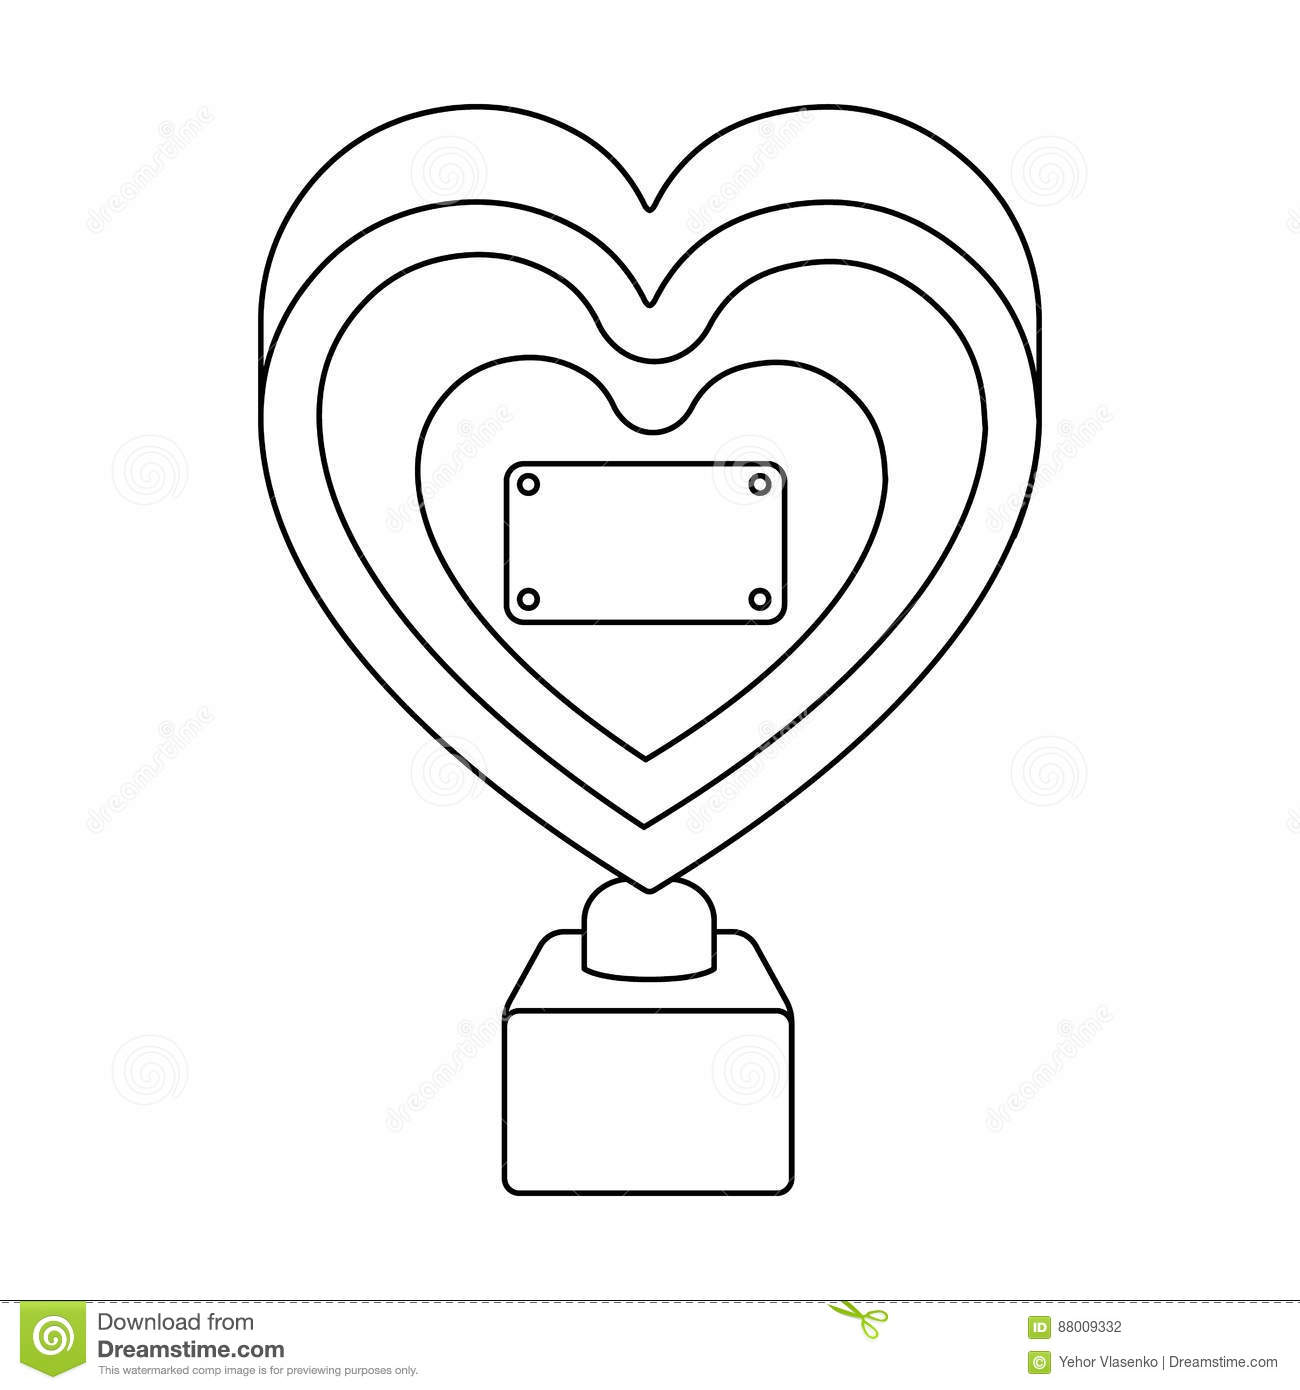 Bronze Heart In The Form Of Awards.The Audience Award For